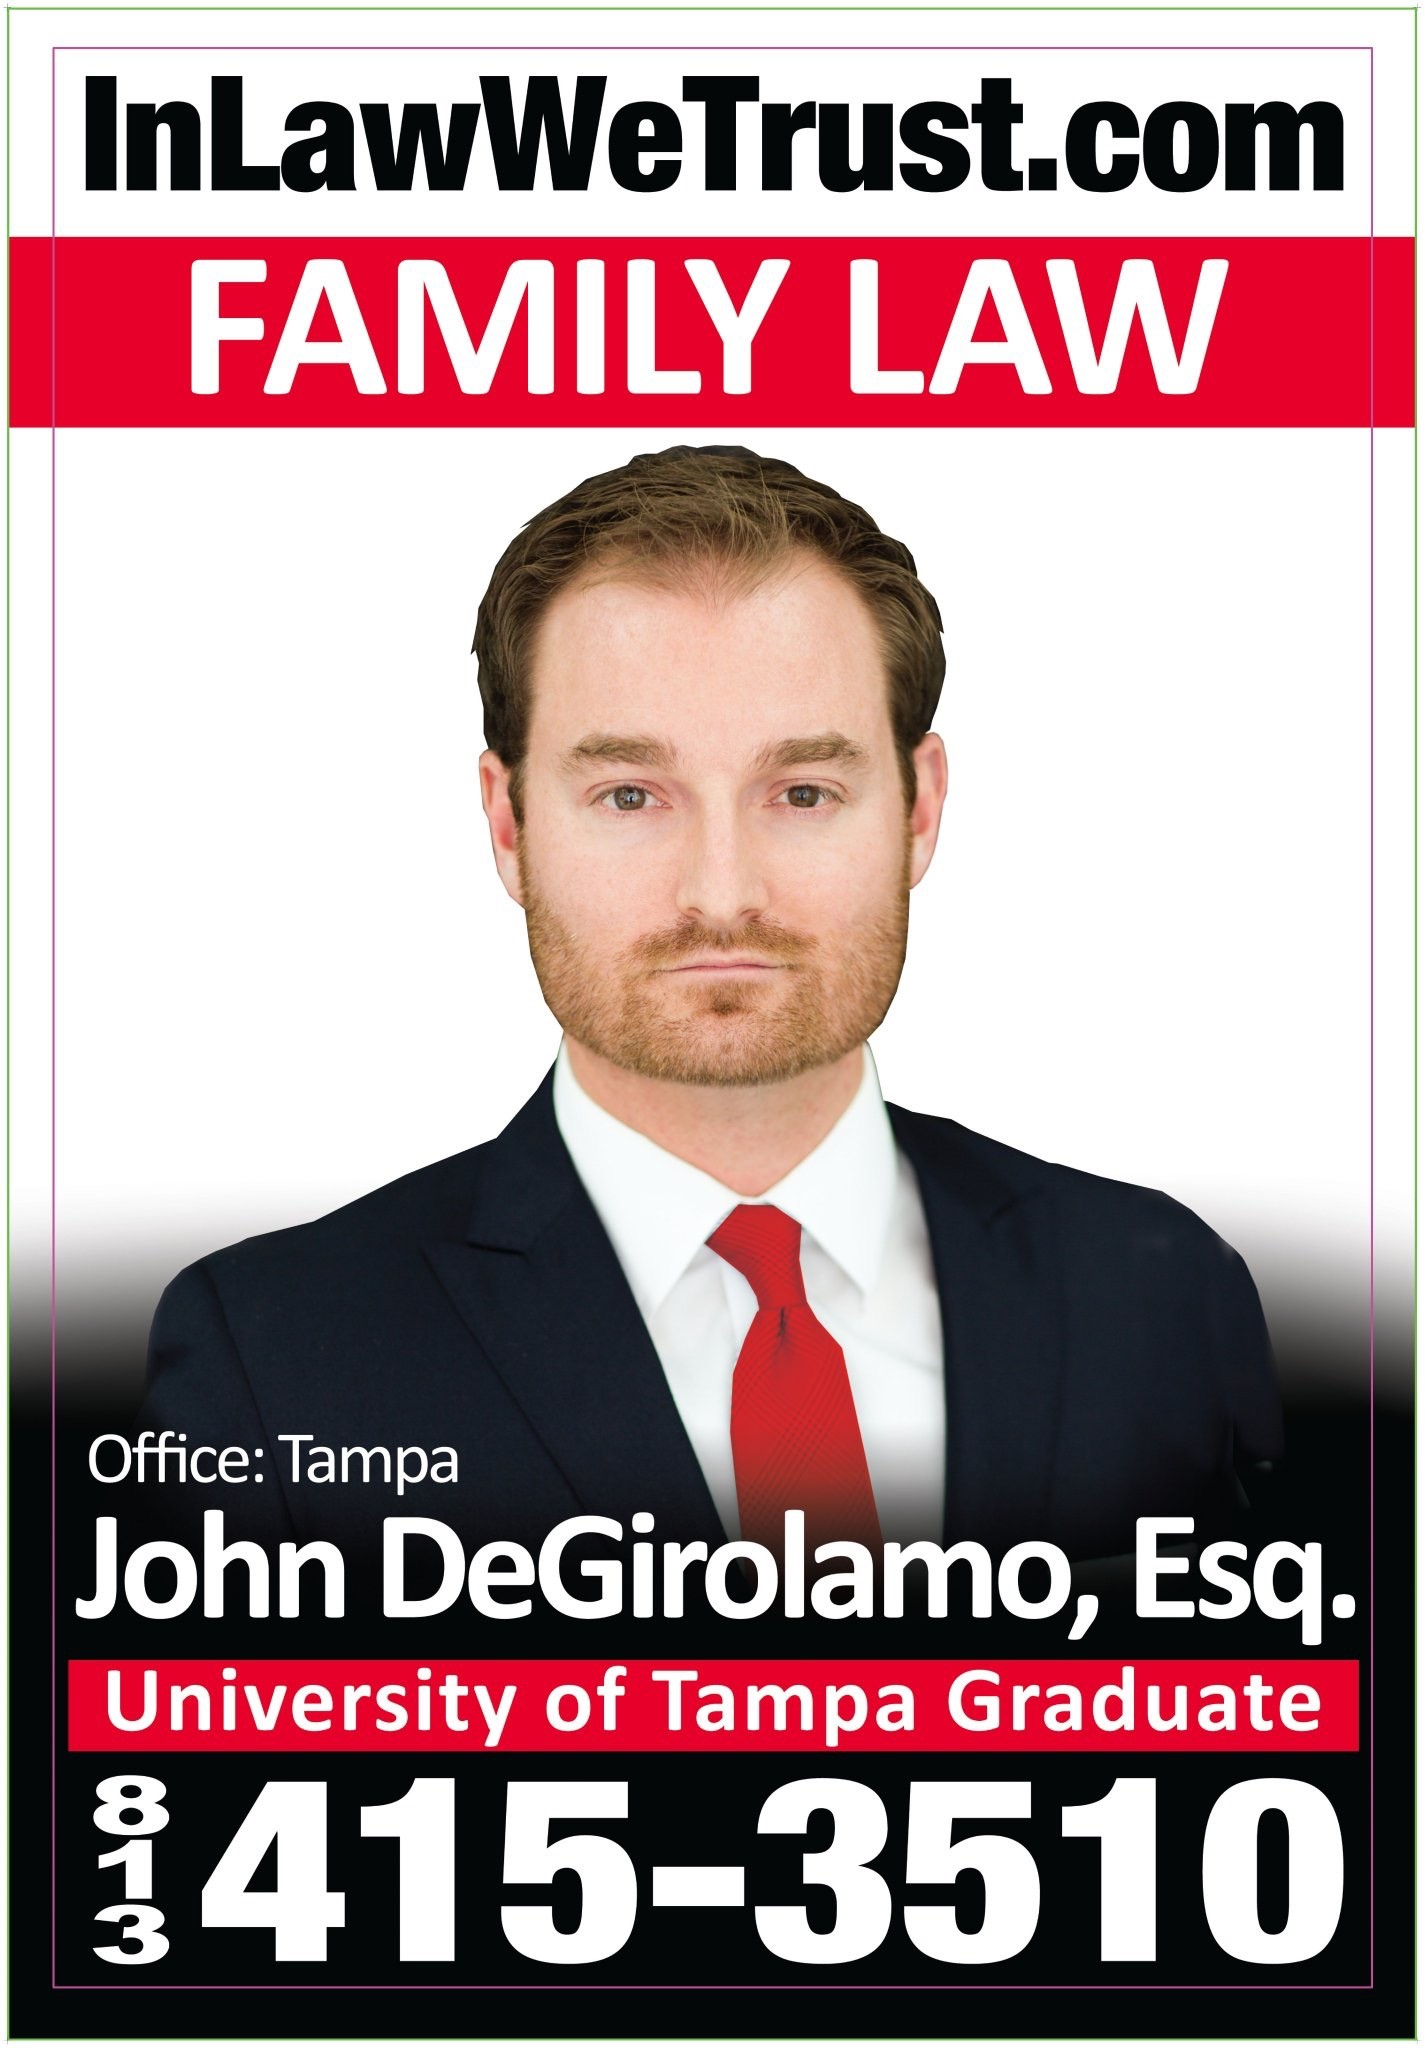 In Law We Trust John DeGirolamo Family Divorce Law Tampa